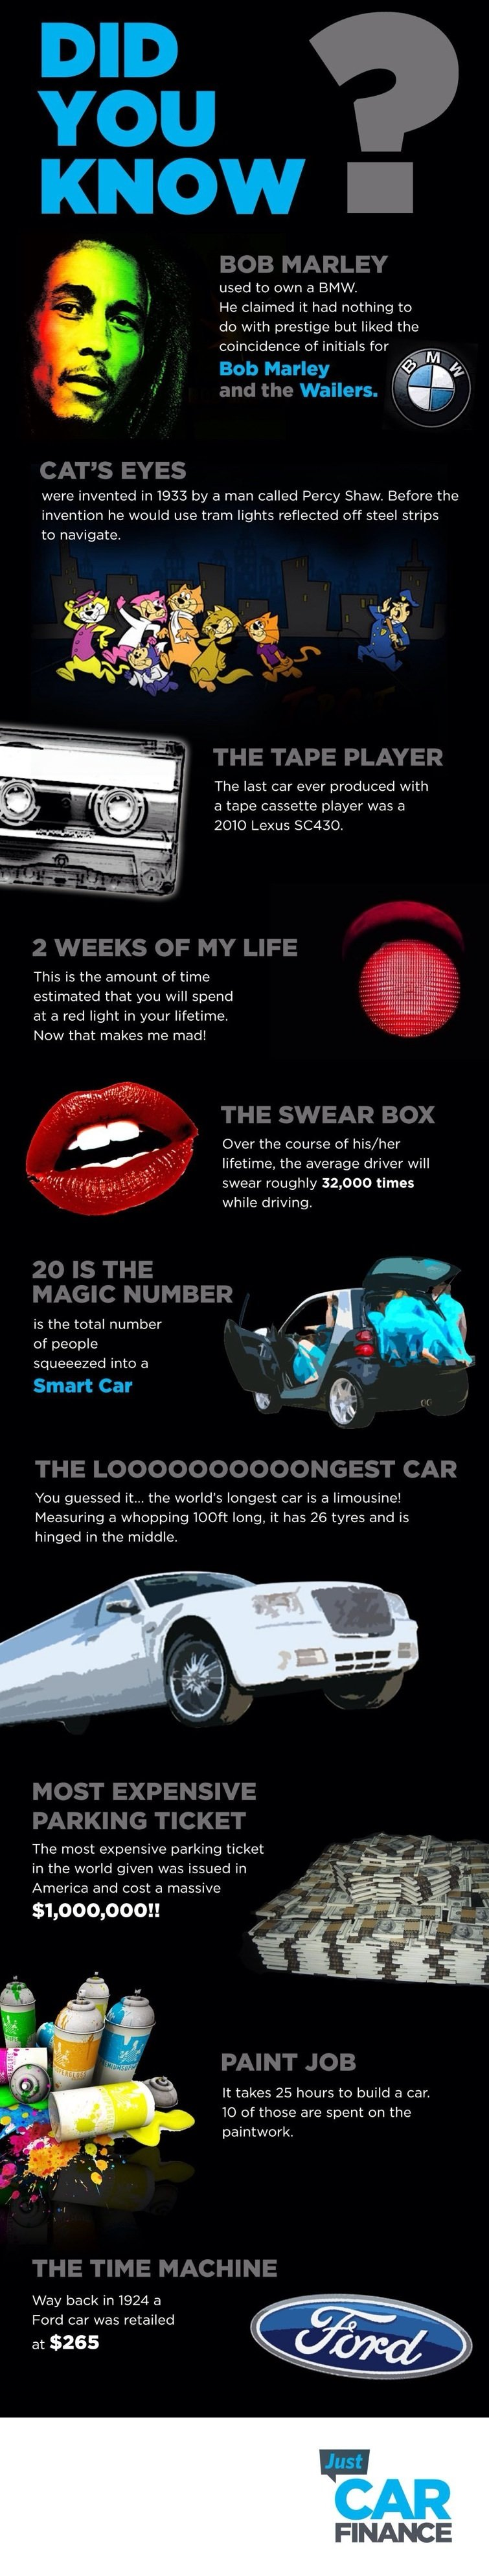 Do You Know?? Funny Facts about Cars - Infographic